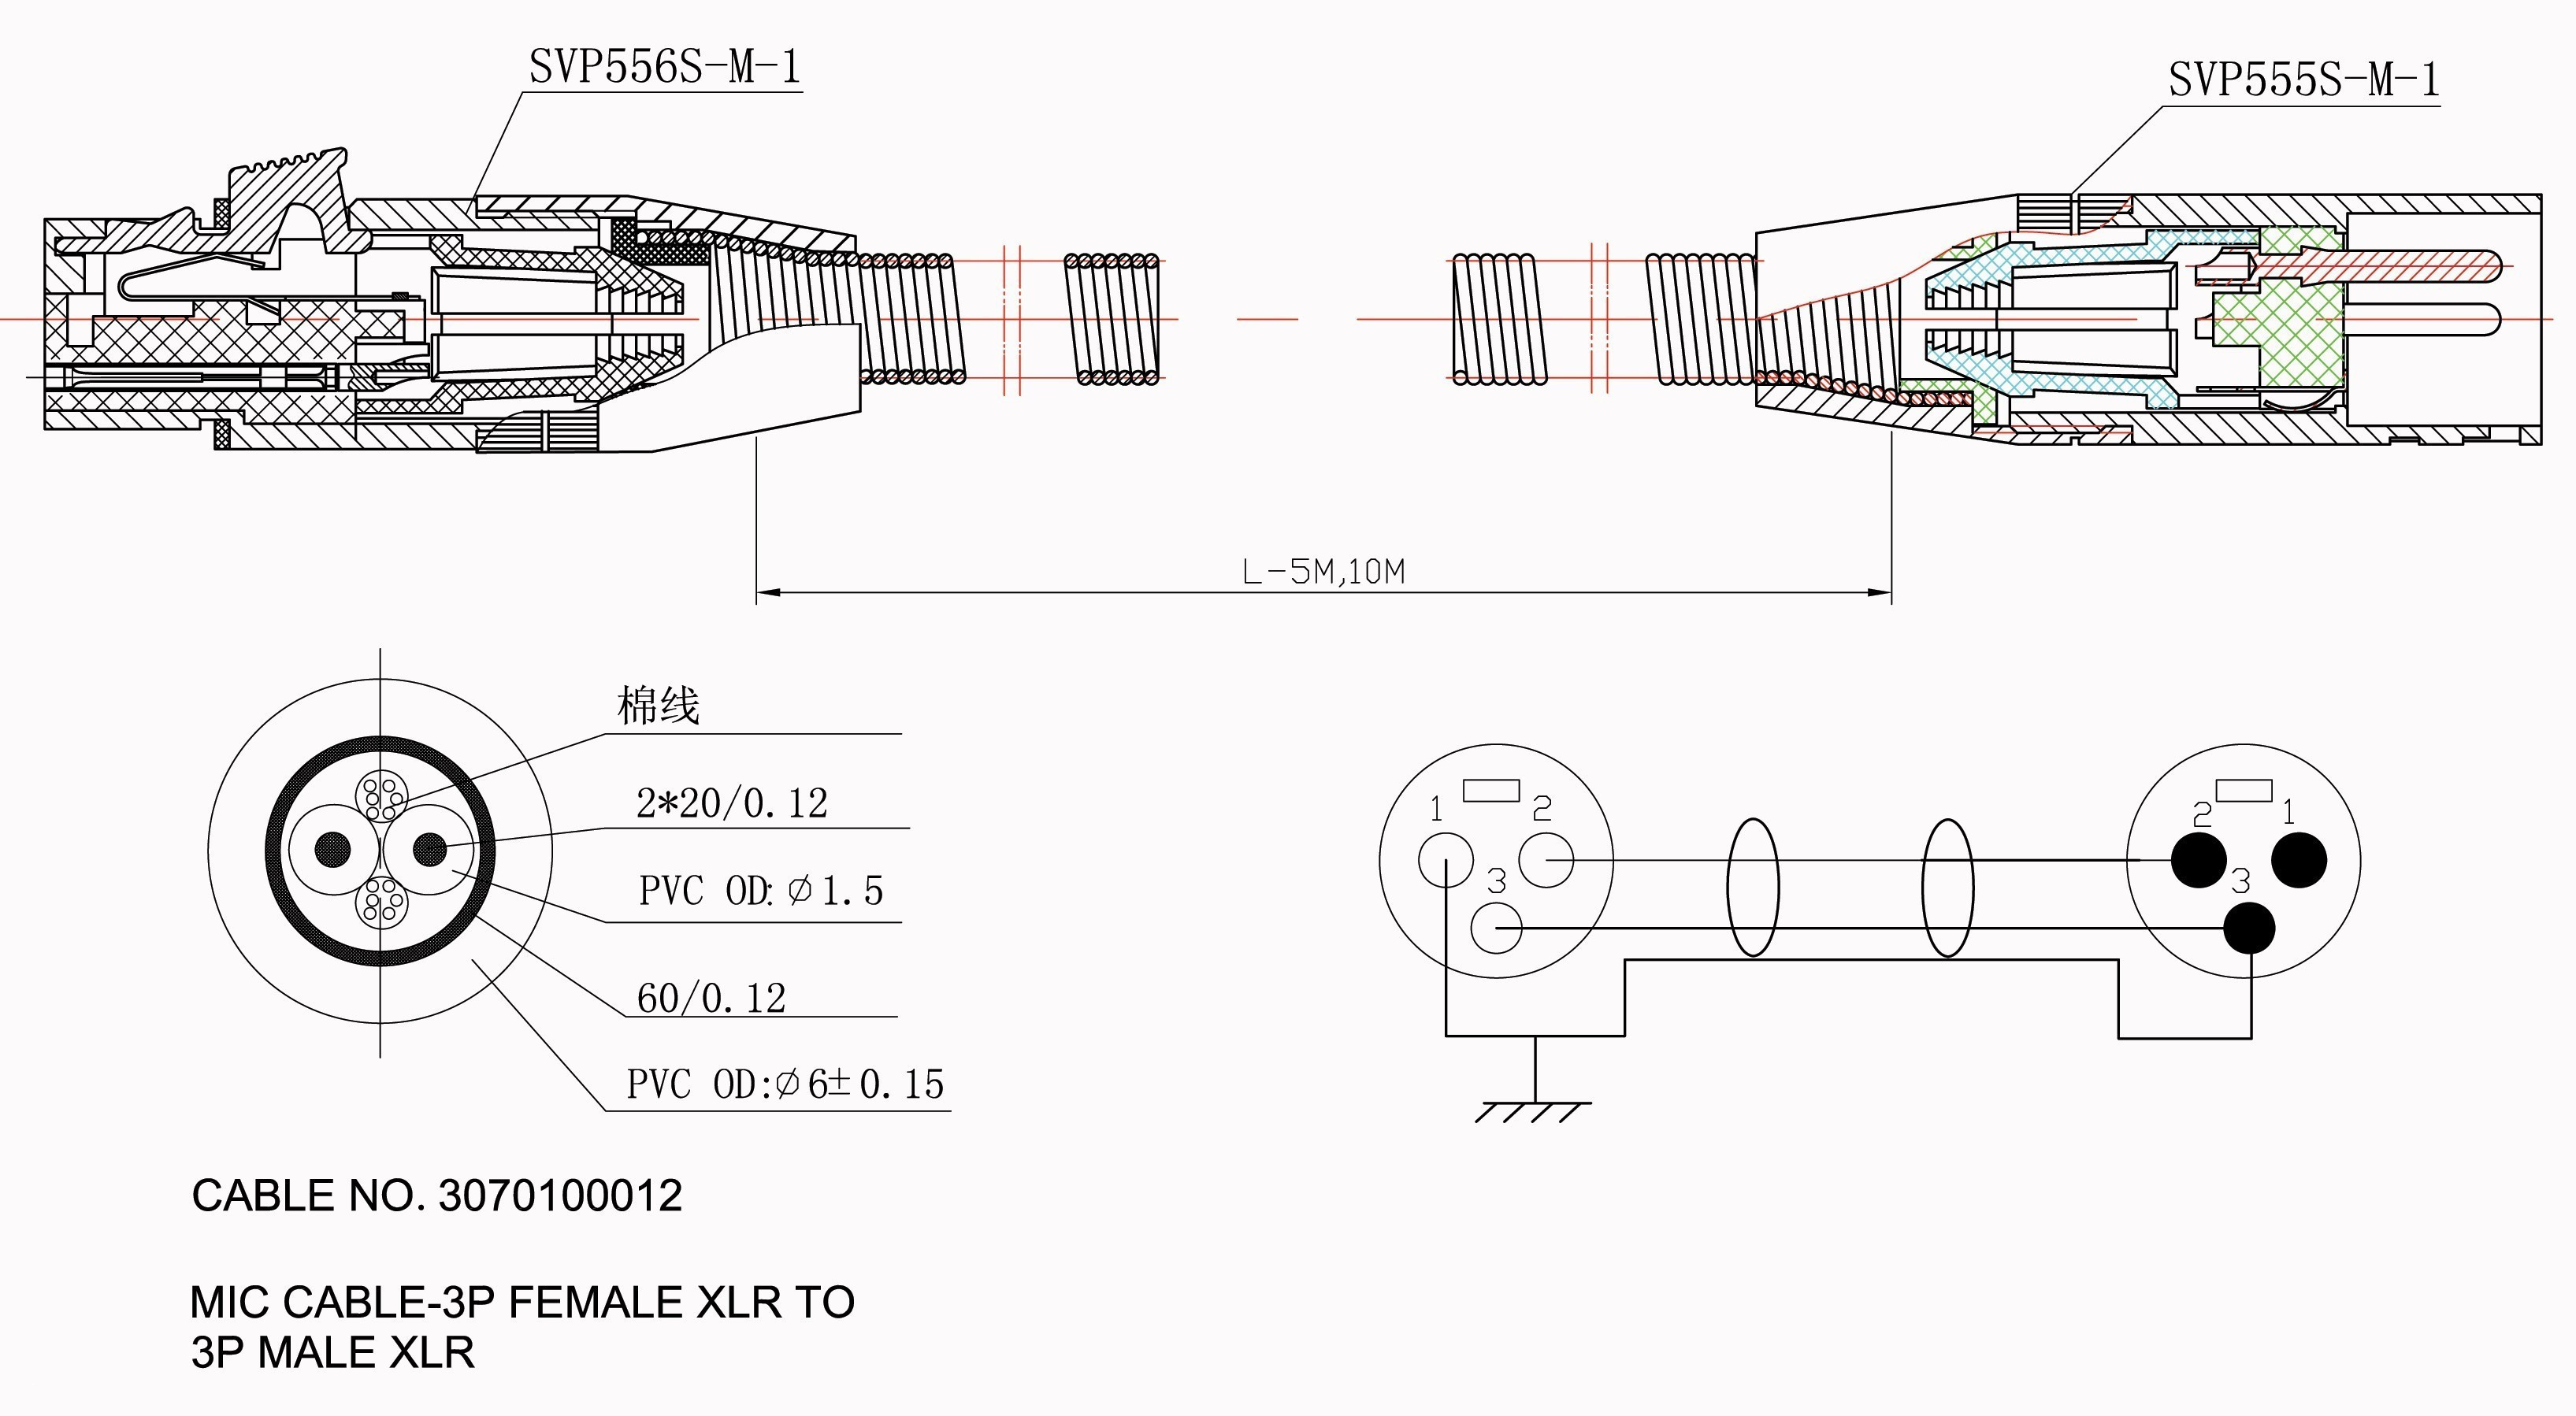 Ford 7 3 Engine Diagram Reference 7 3 Powerstroke Glow Plug Relay Wiring Diagram Of Ford 7 3 Engine Diagram